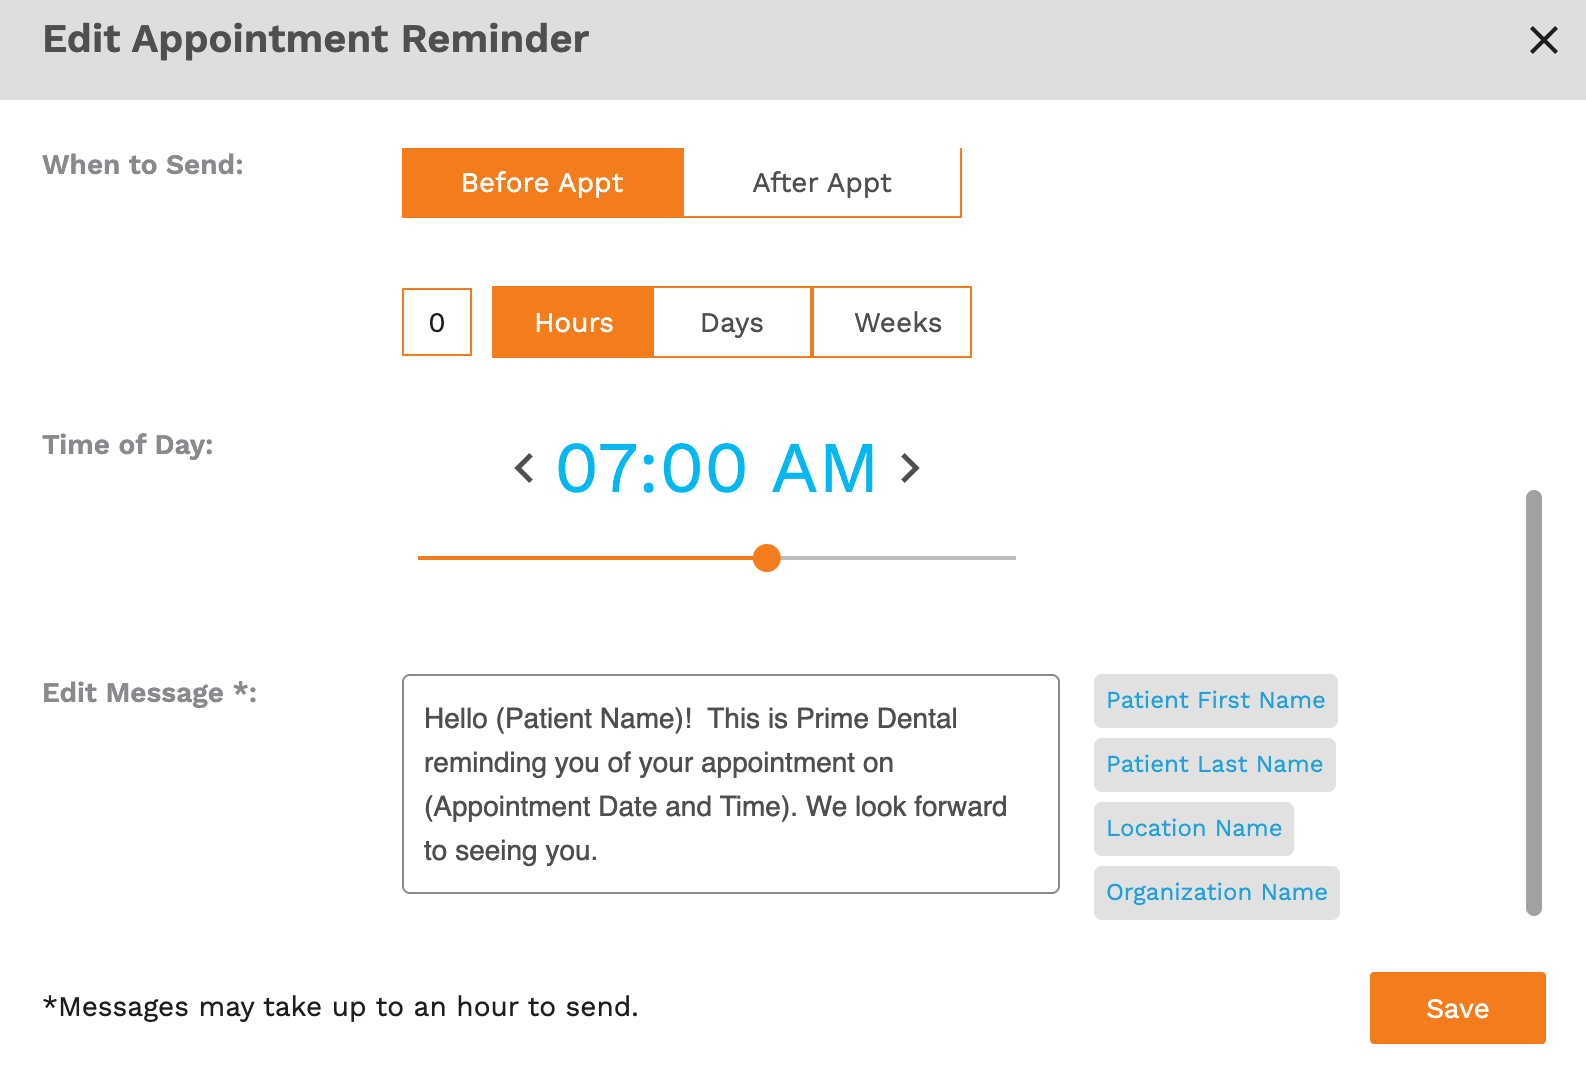 Adit Appointment Reminder